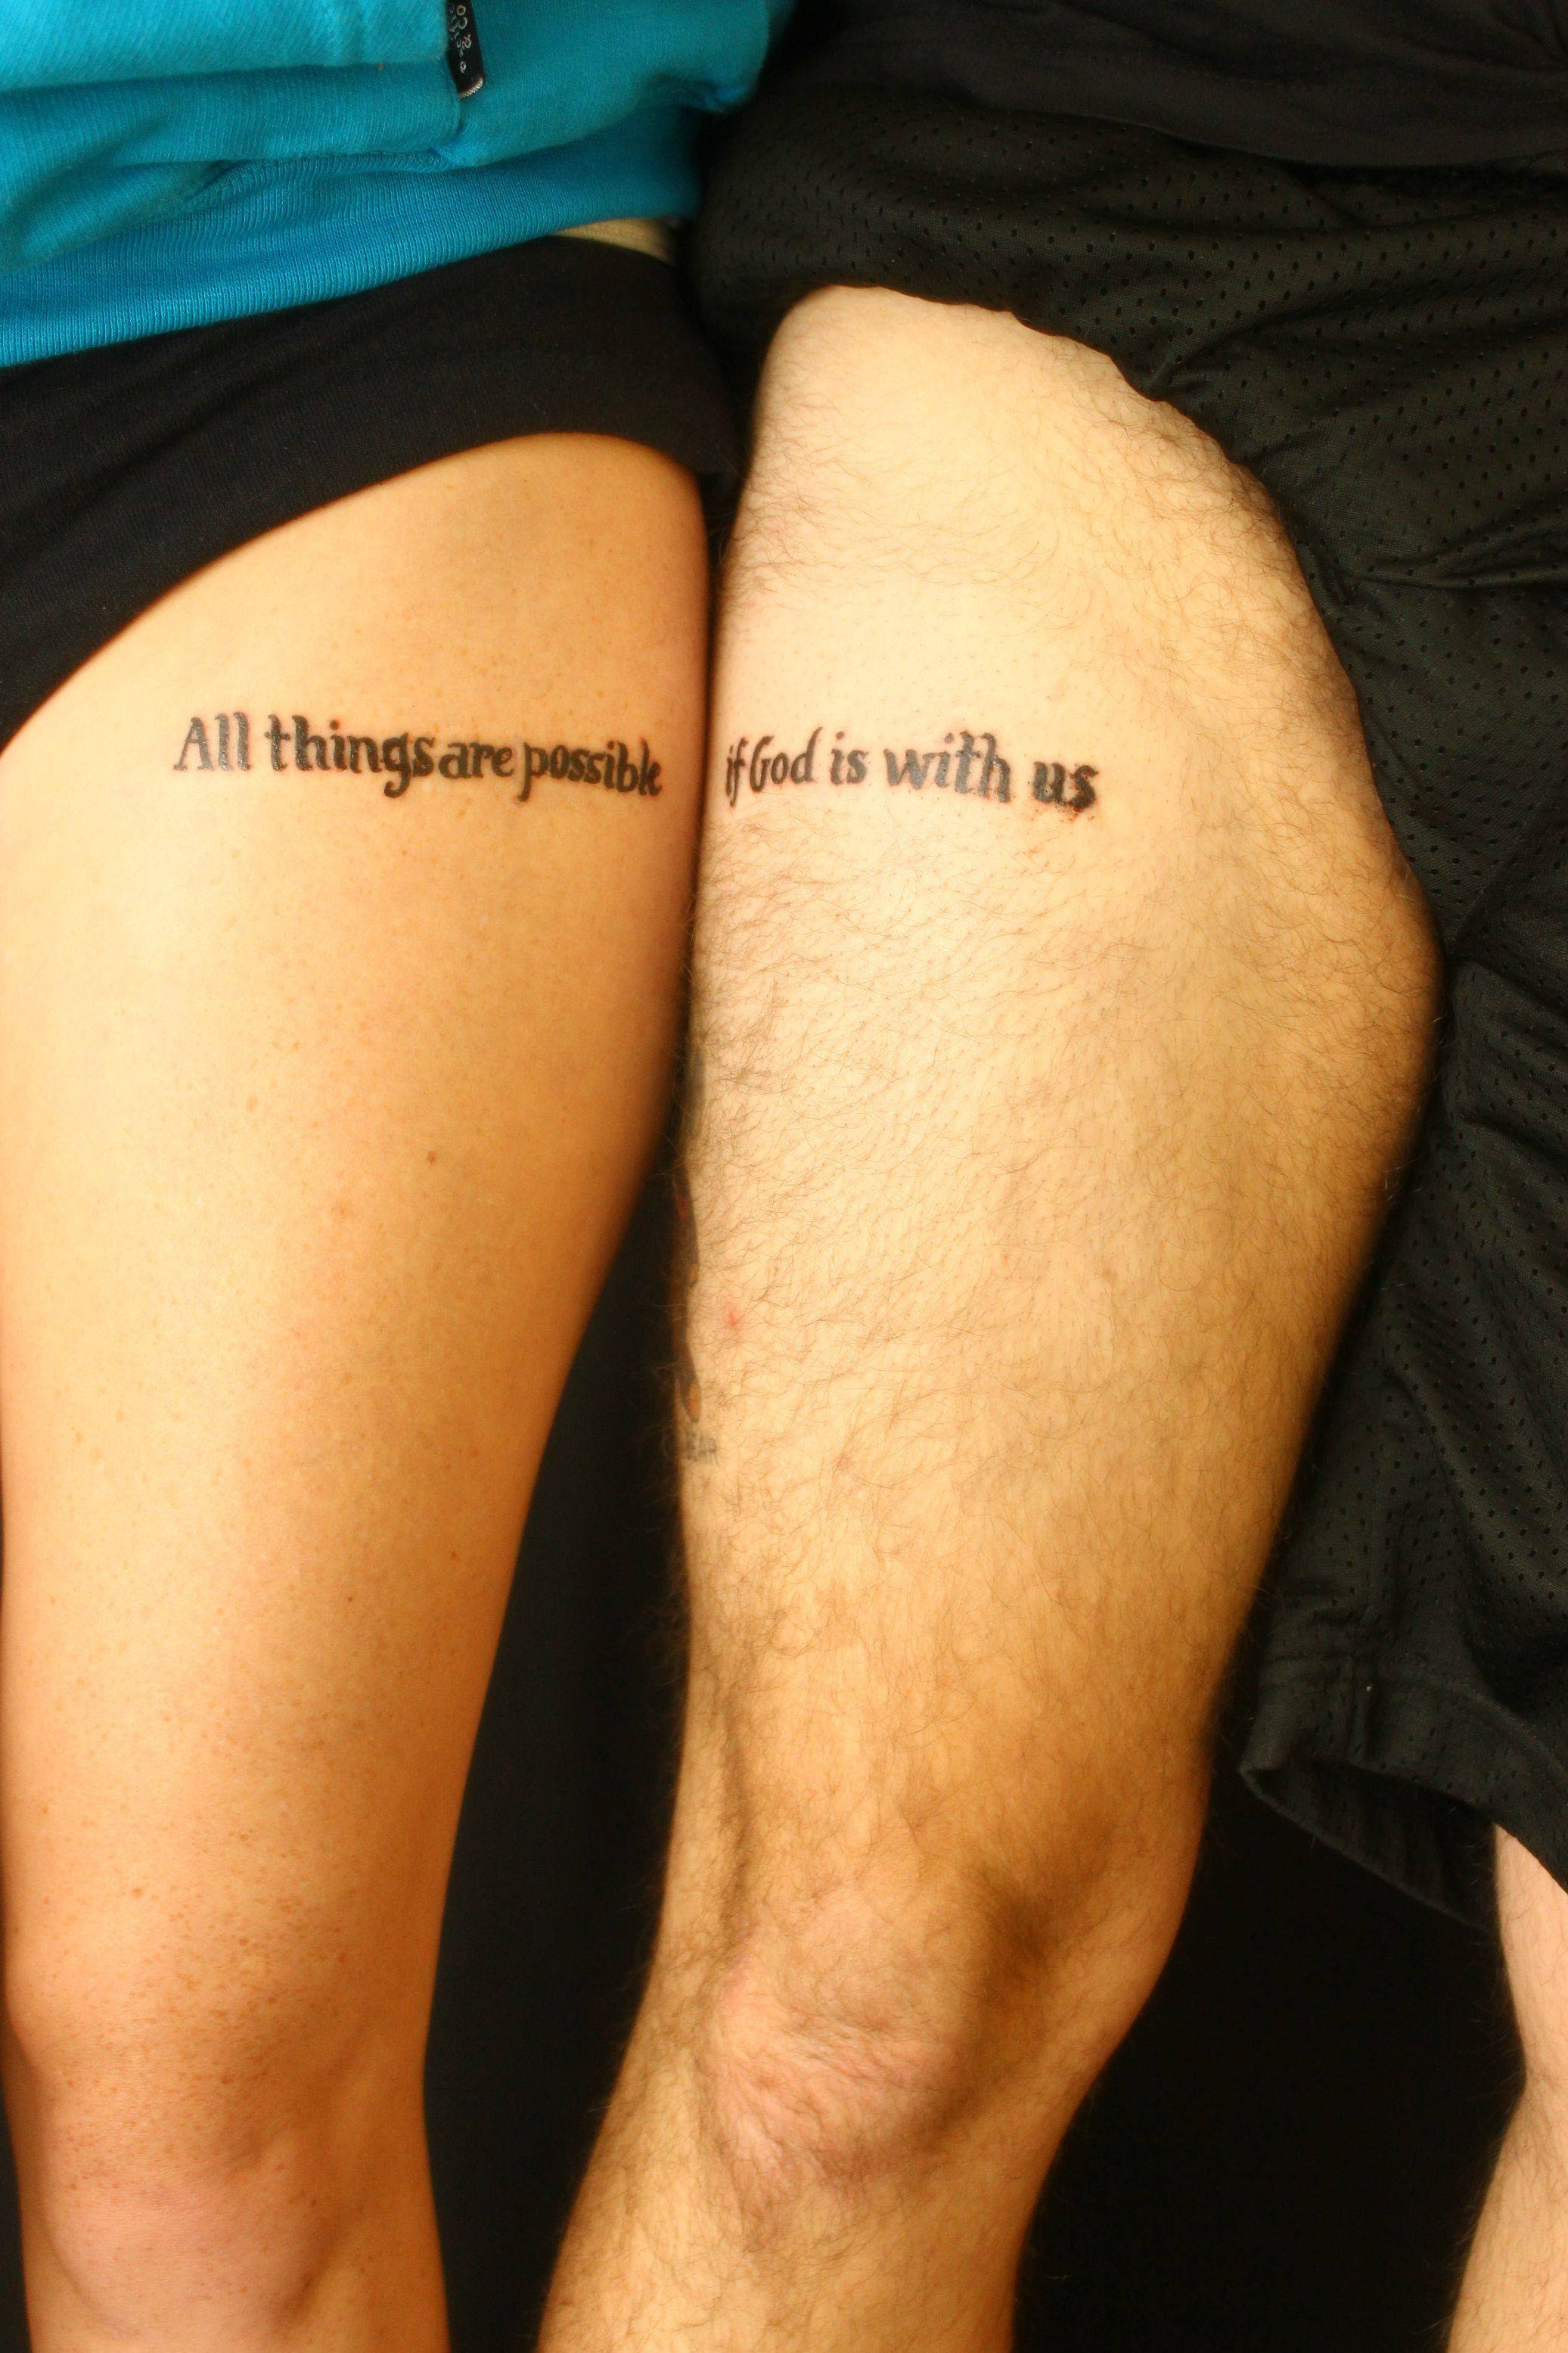 Couple Tattoos Quotes Tumblr : couple, tattoos, quotes, tumblr, Tattoo, Quotes, Tumblr, Collection, Within, Images